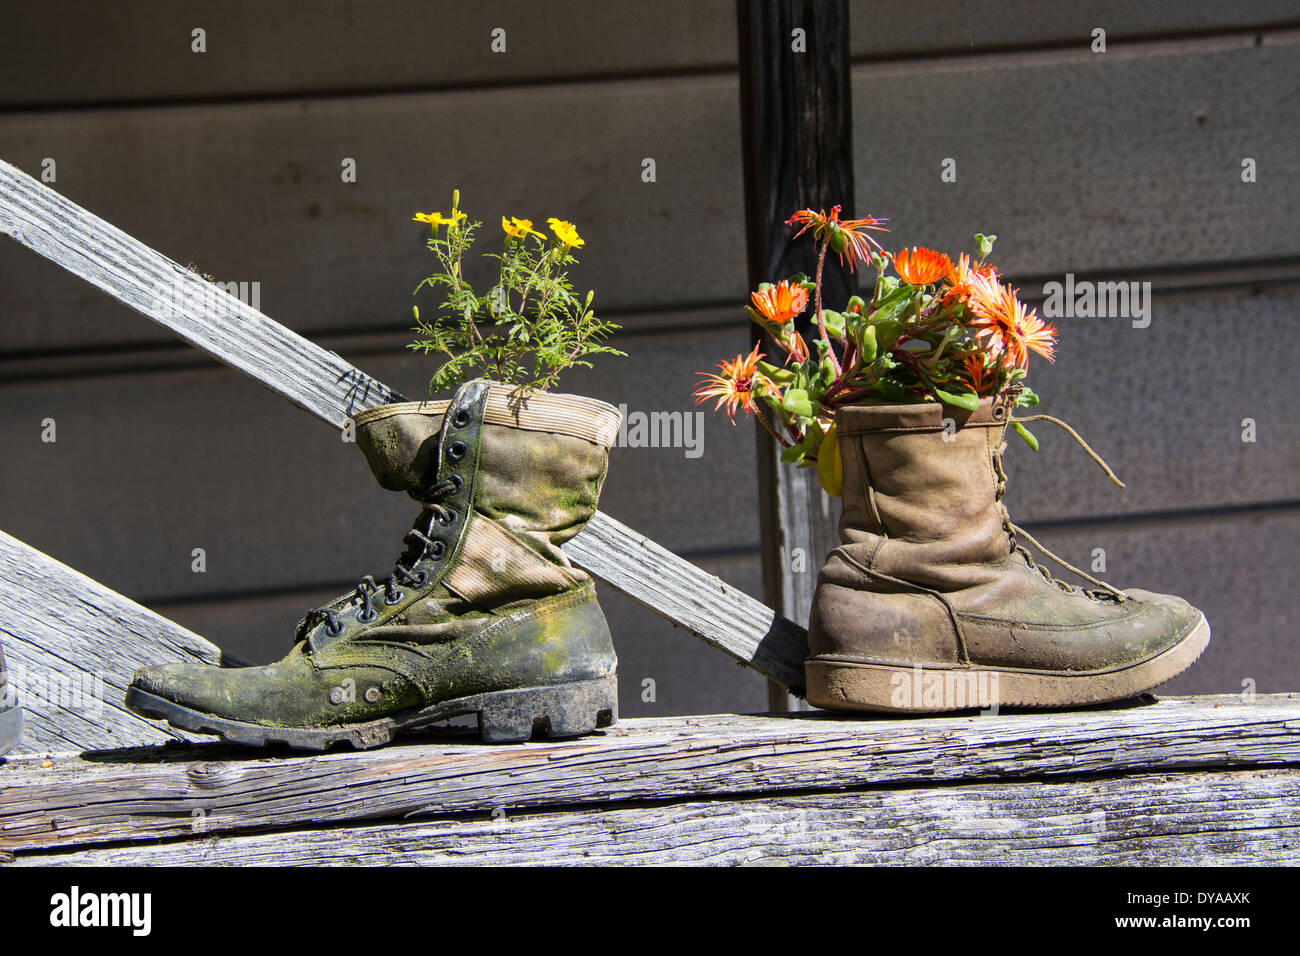 two-old-boots-used-as-quaint-and-unusual